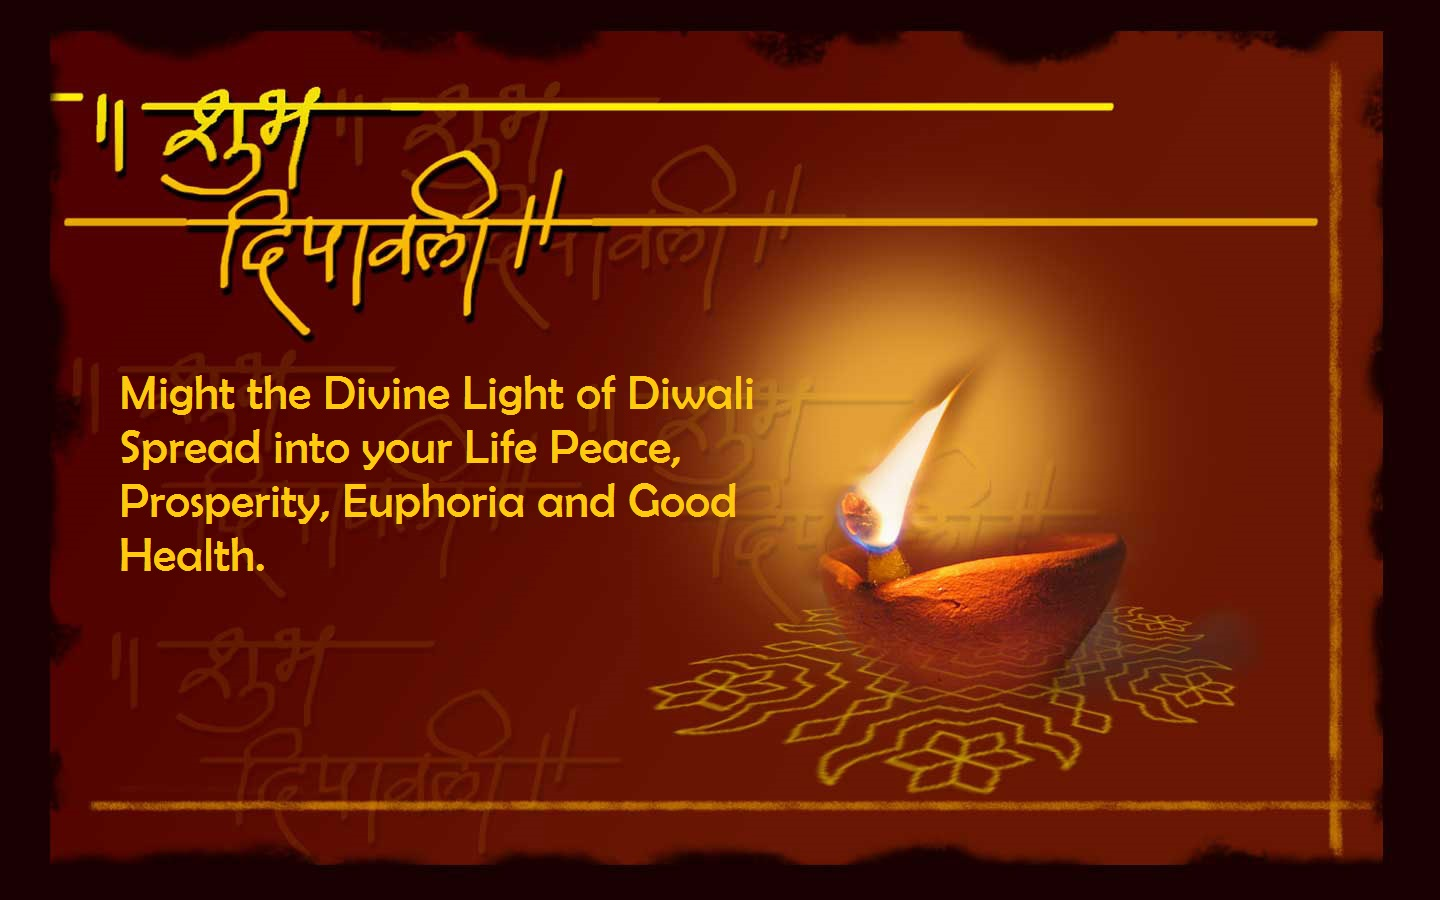 Happy Diwali 2018 Quotes, Images, Wishes and Greetings ...